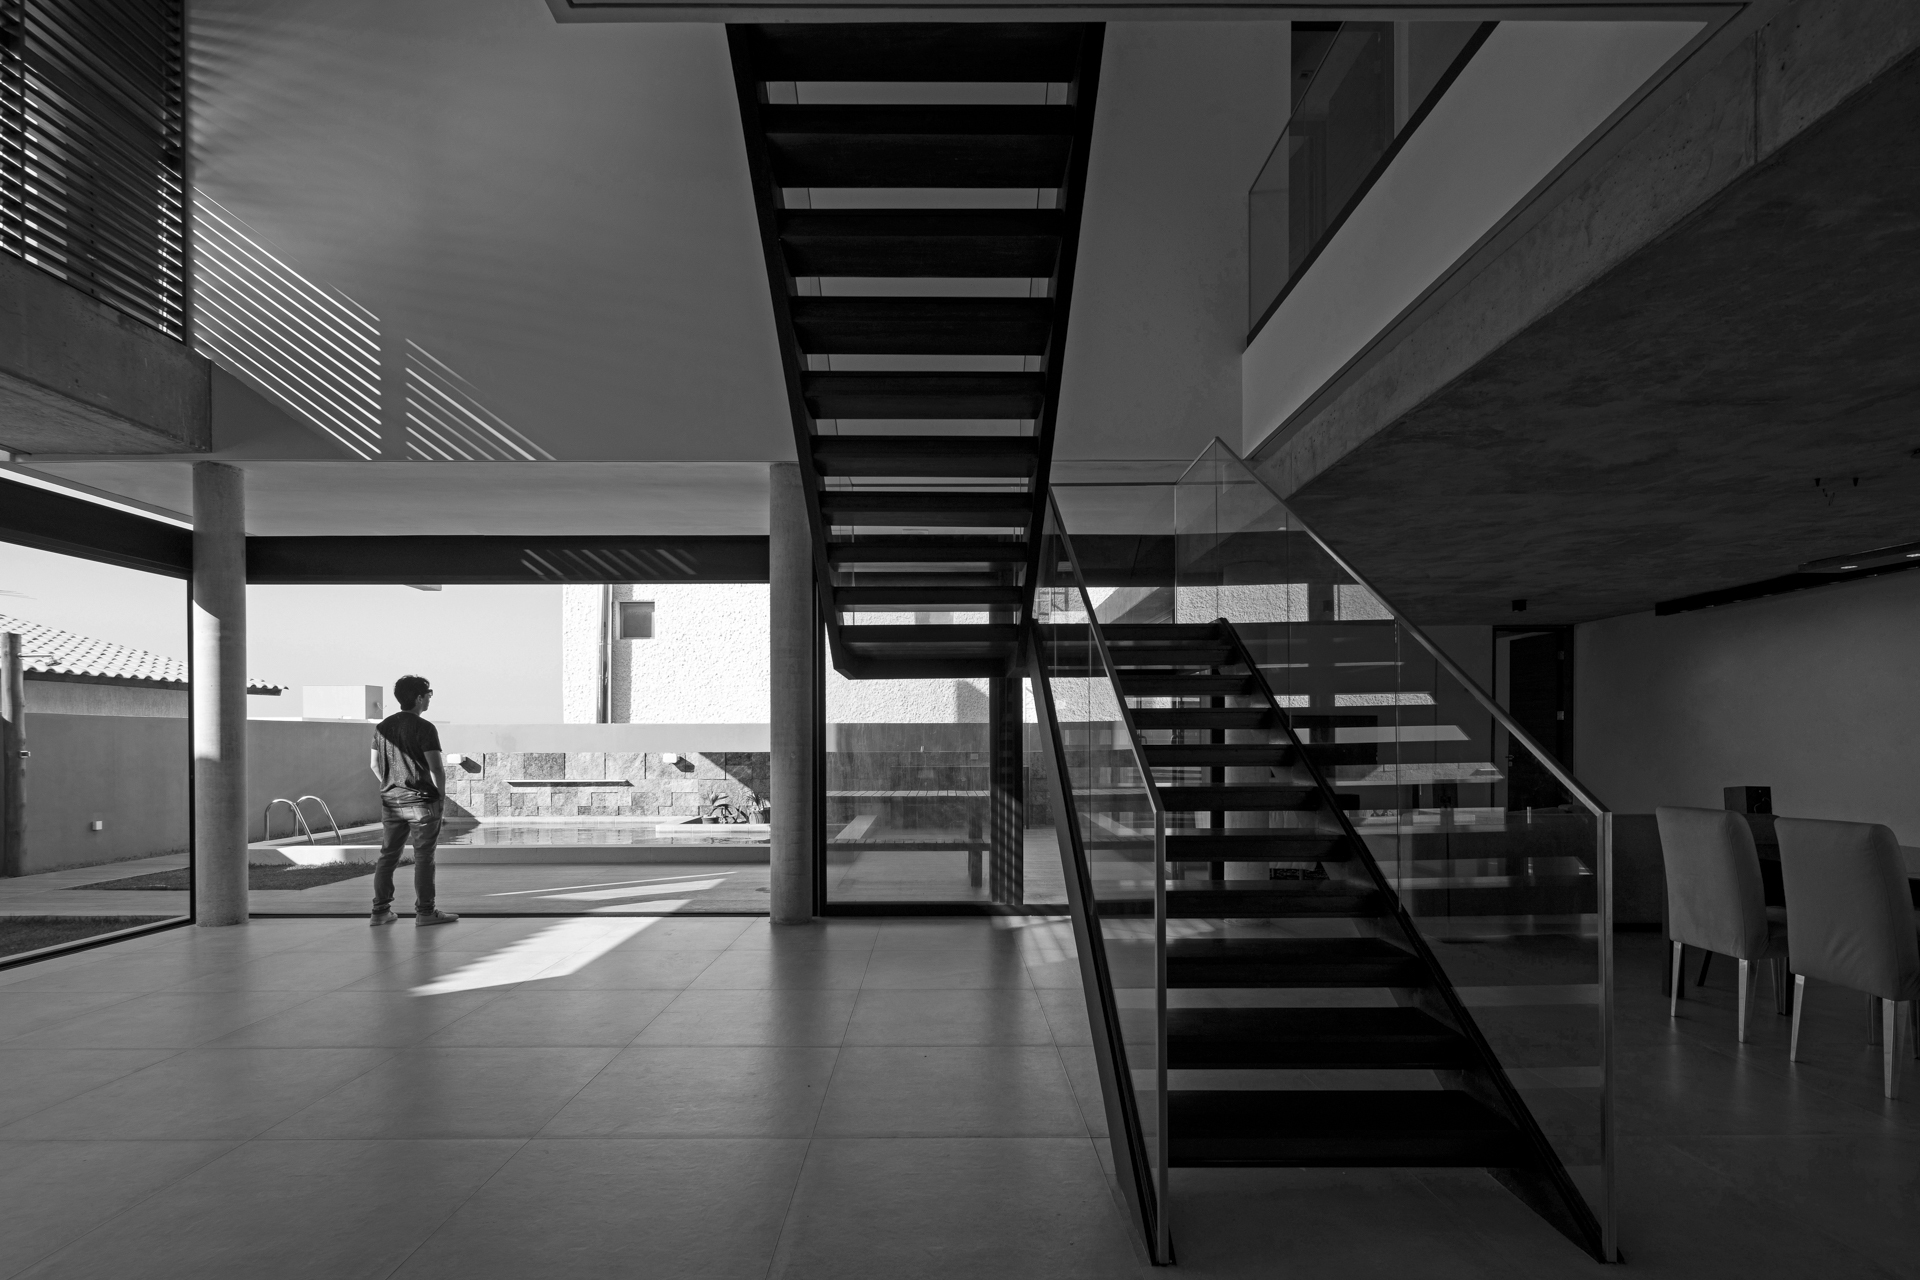 19_CASA_IF_-_Martins_Lucena_Arquitetos-23.jpg